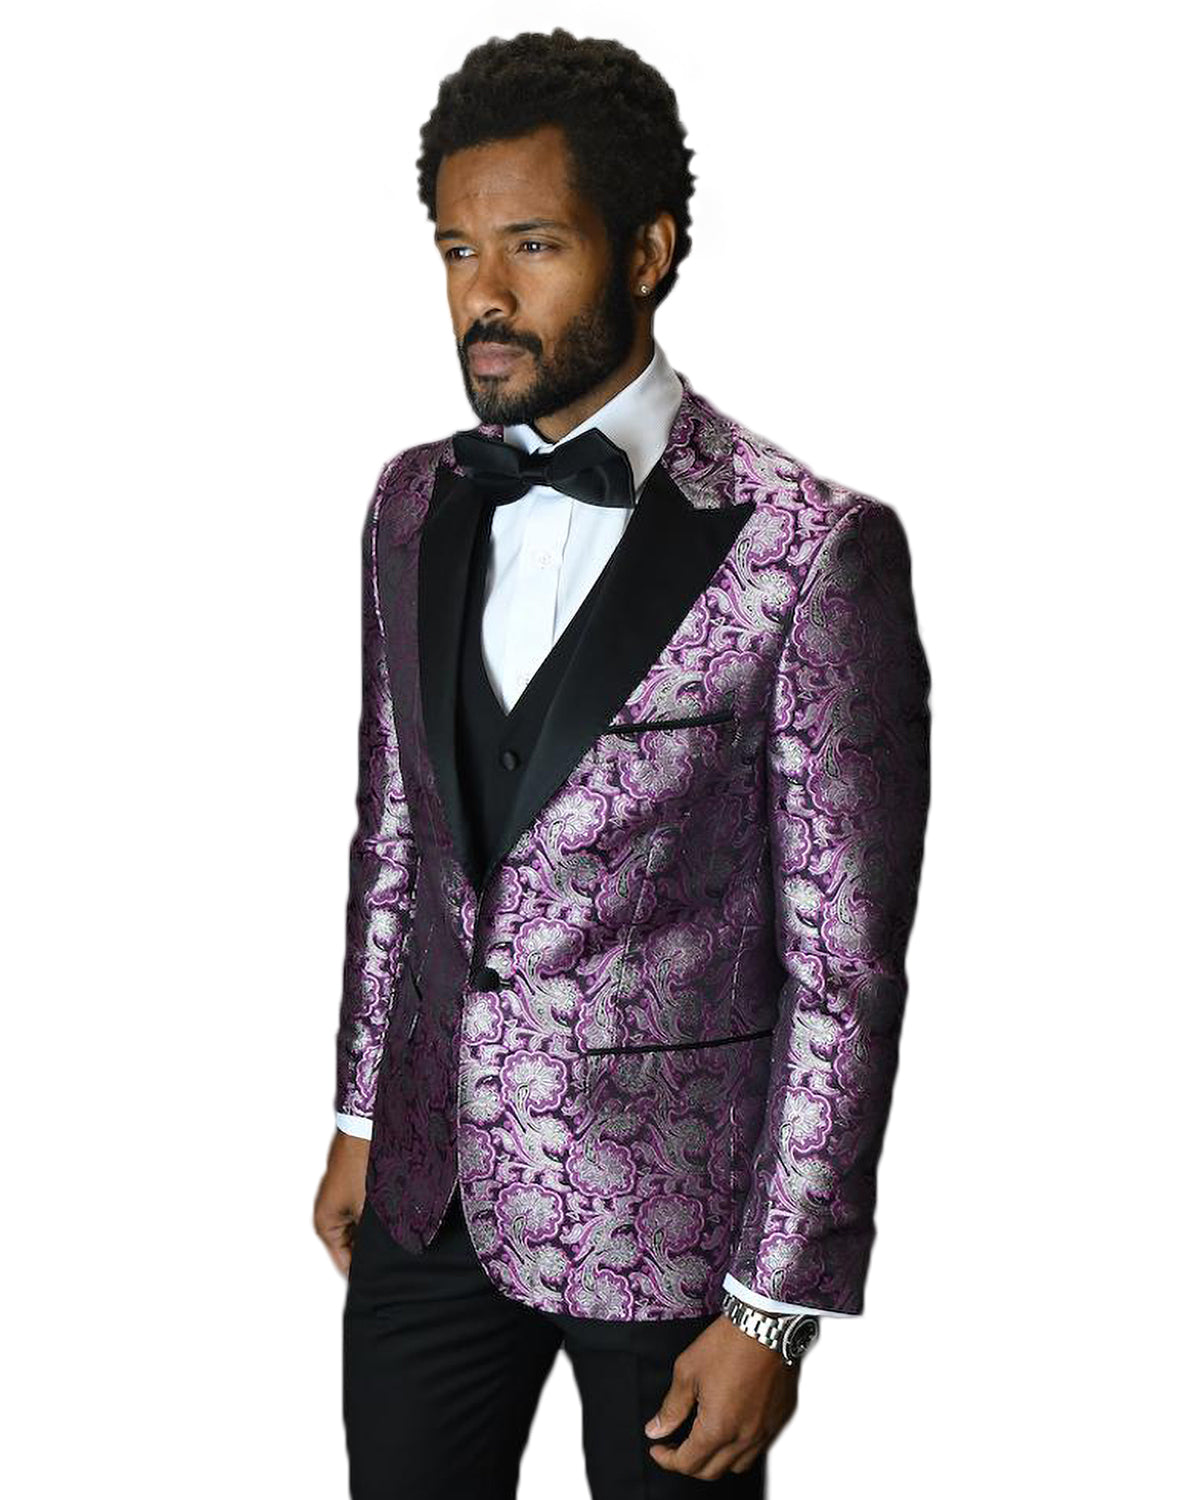 Fuschia Paisley Dinner Jacket Tuxedo Rental - Rainwater's Men's Clothing and Tuxedo Rental